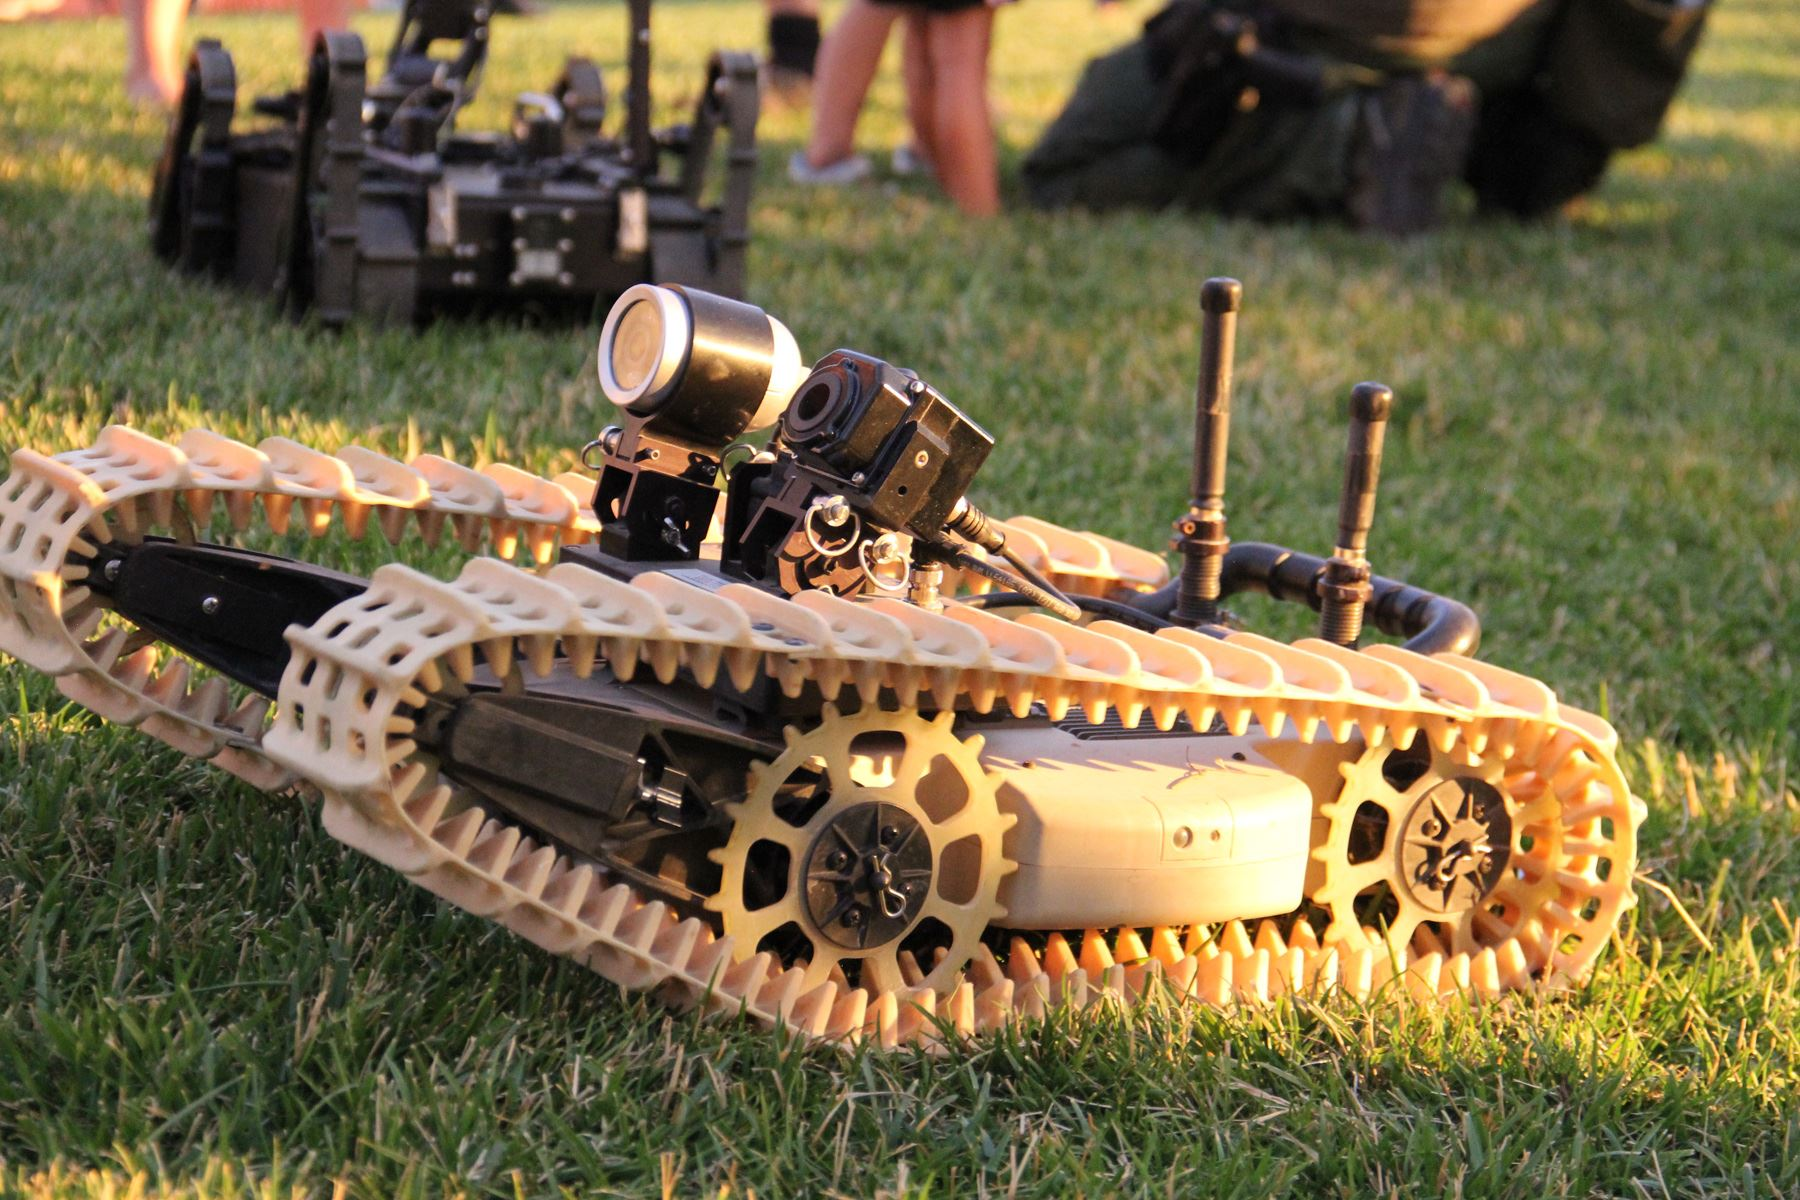 Small bomb robot on grass